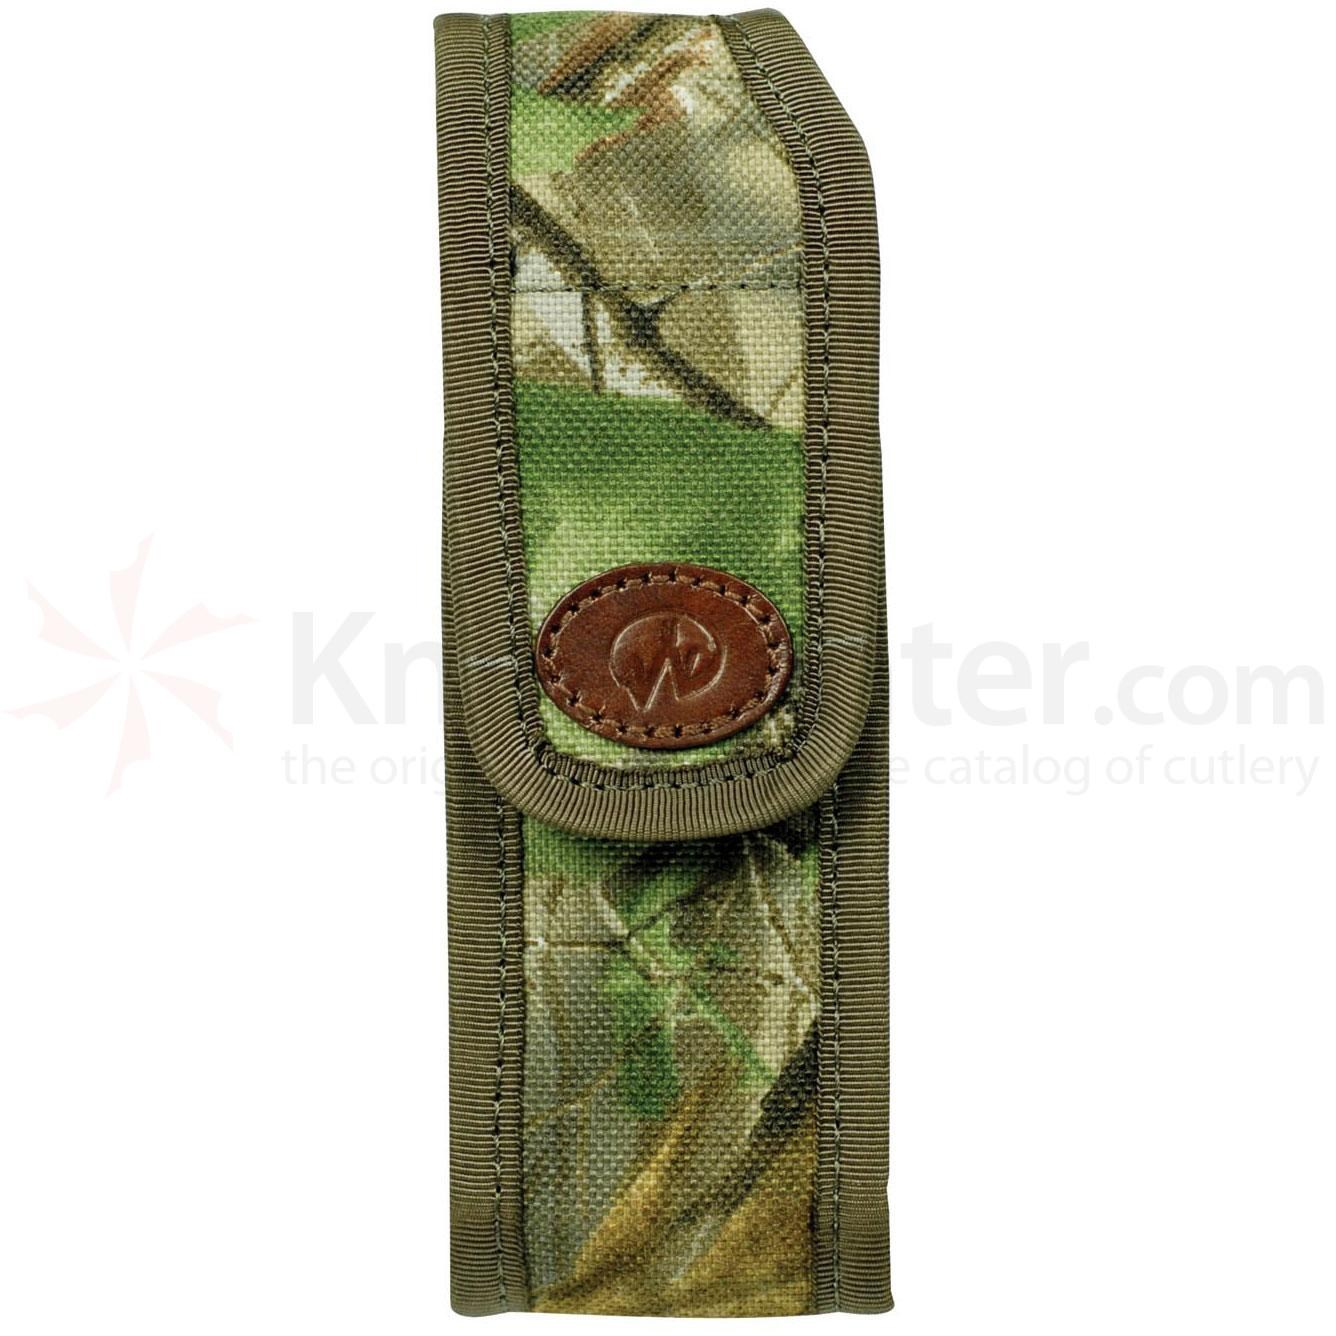 Leatherman 946600 Folding Hunting Knife Sheath - Nylon